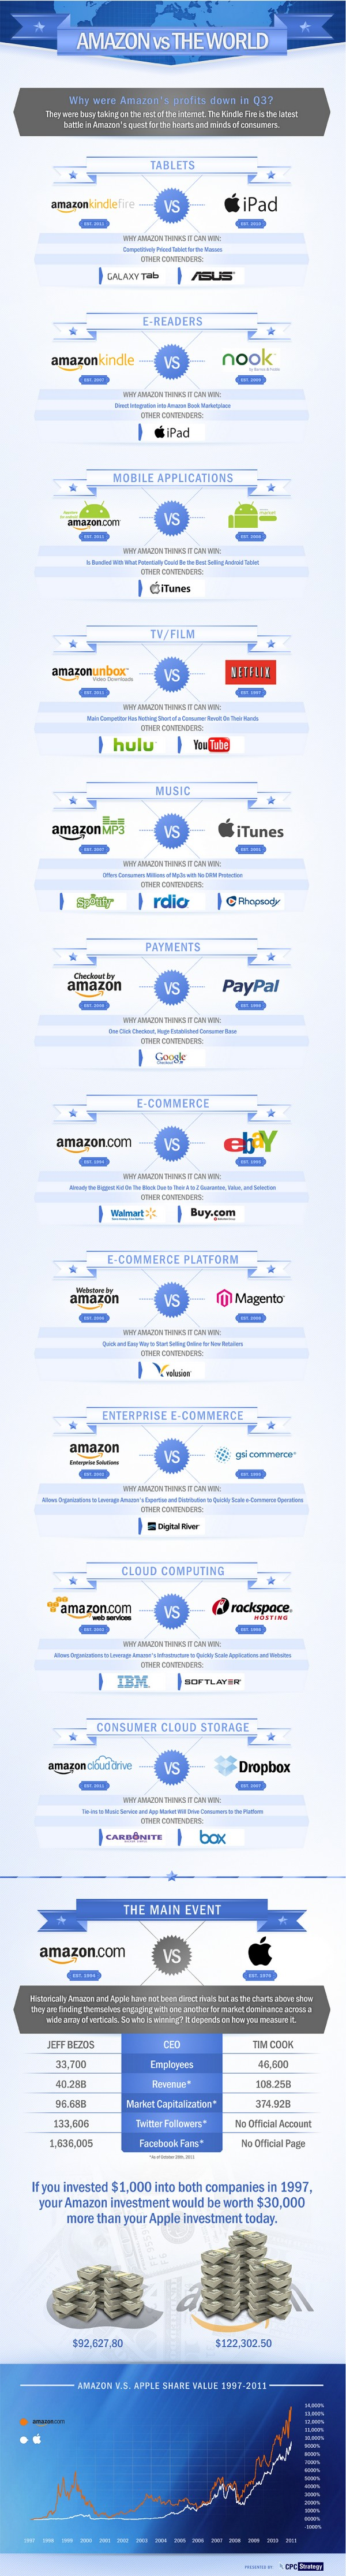 amazon vs world infographic1 Amazon Vs Rivals Who Will Win ? [Infographic]